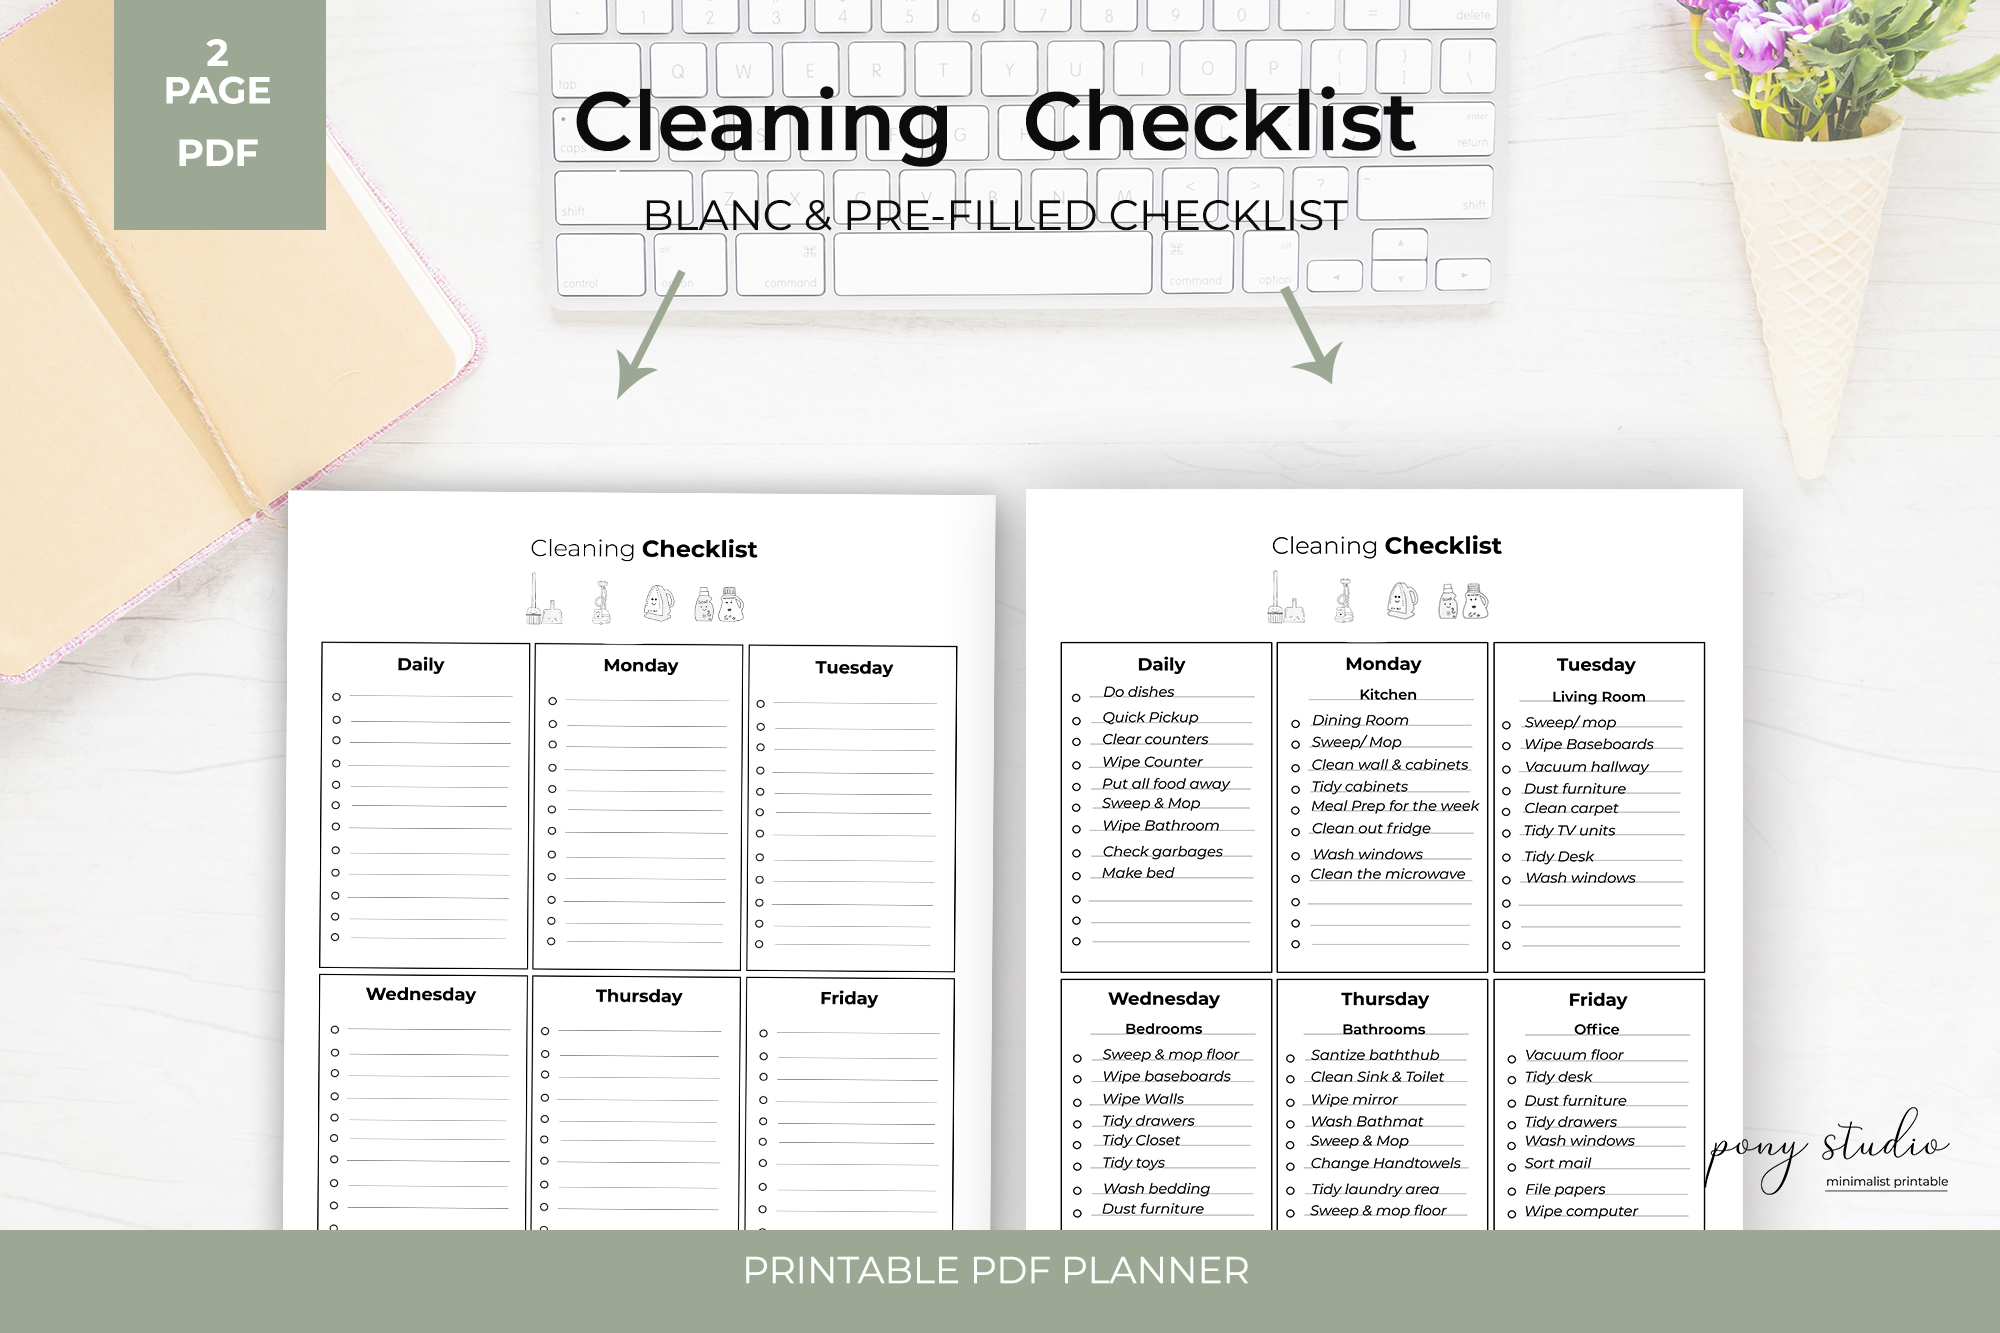 graphic about Cleaning List Printable named Cleansing Listing Printable - Cleansing Checklist Printable